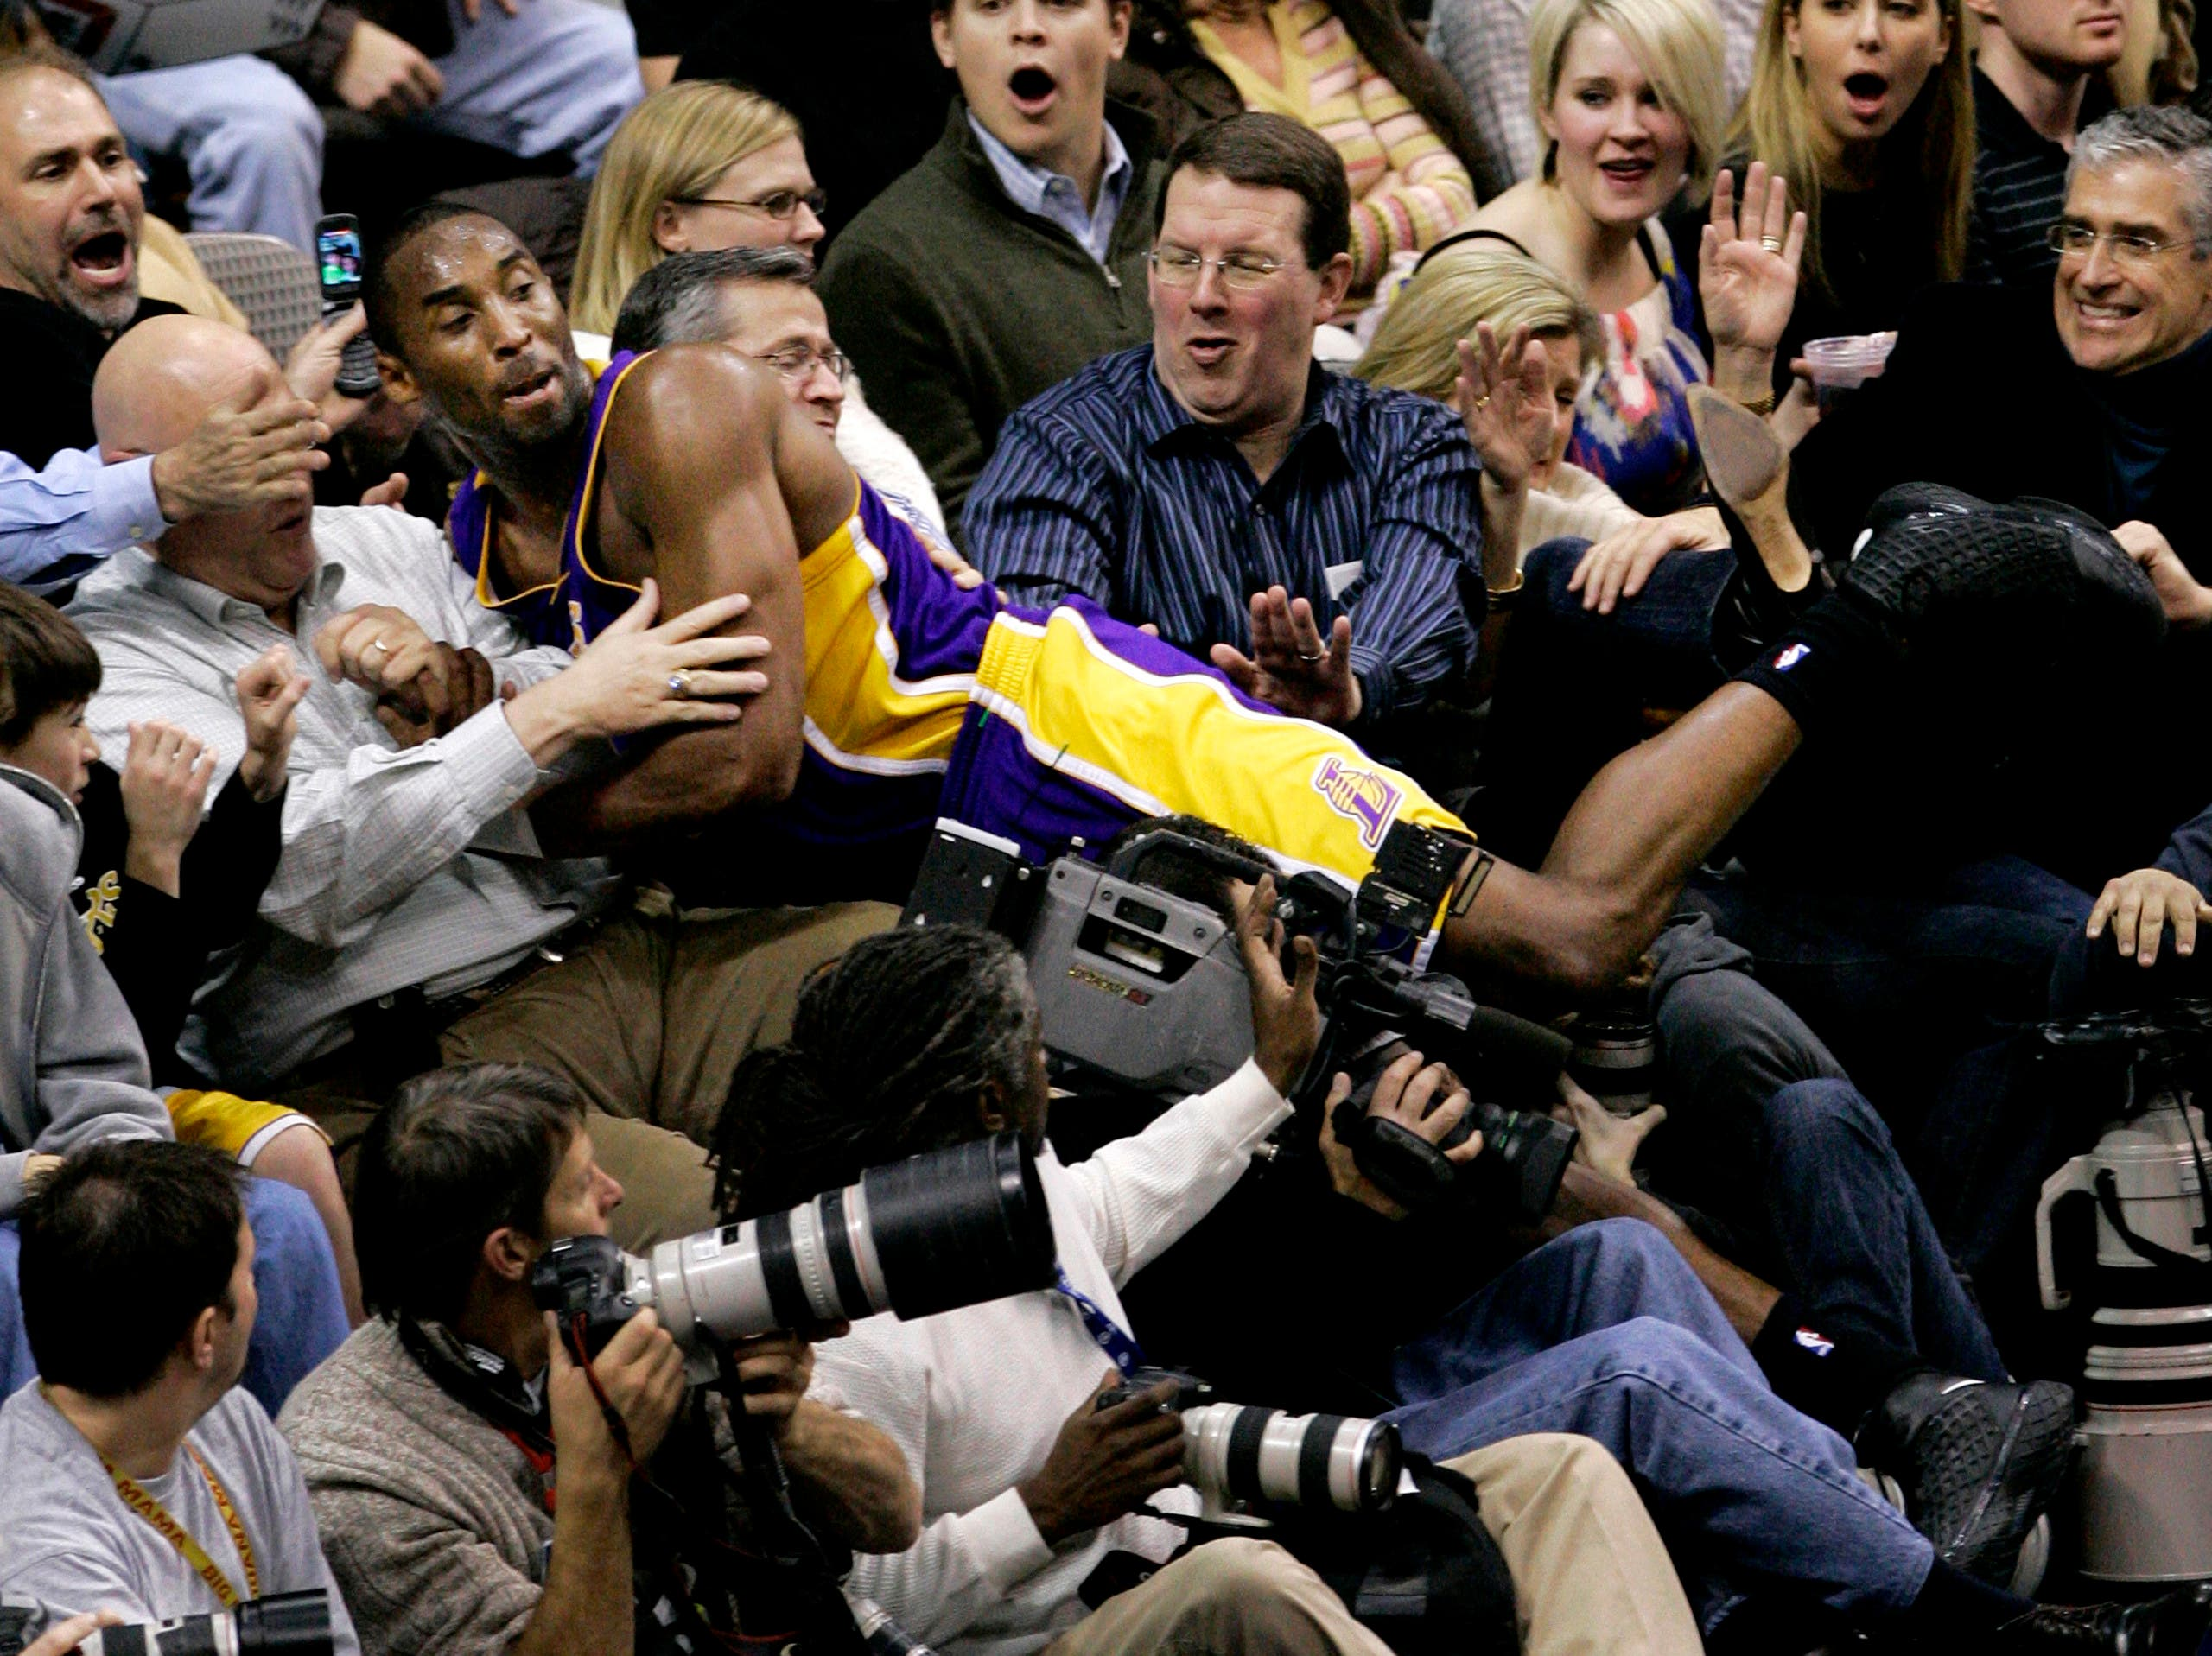 Kobe Bryant lands amongst fans after chasing down a loose ball in the second half of an NBA basketball game against the Dallas Mavericks in Dallas, Friday, Jan. 25, 2008. (AP)